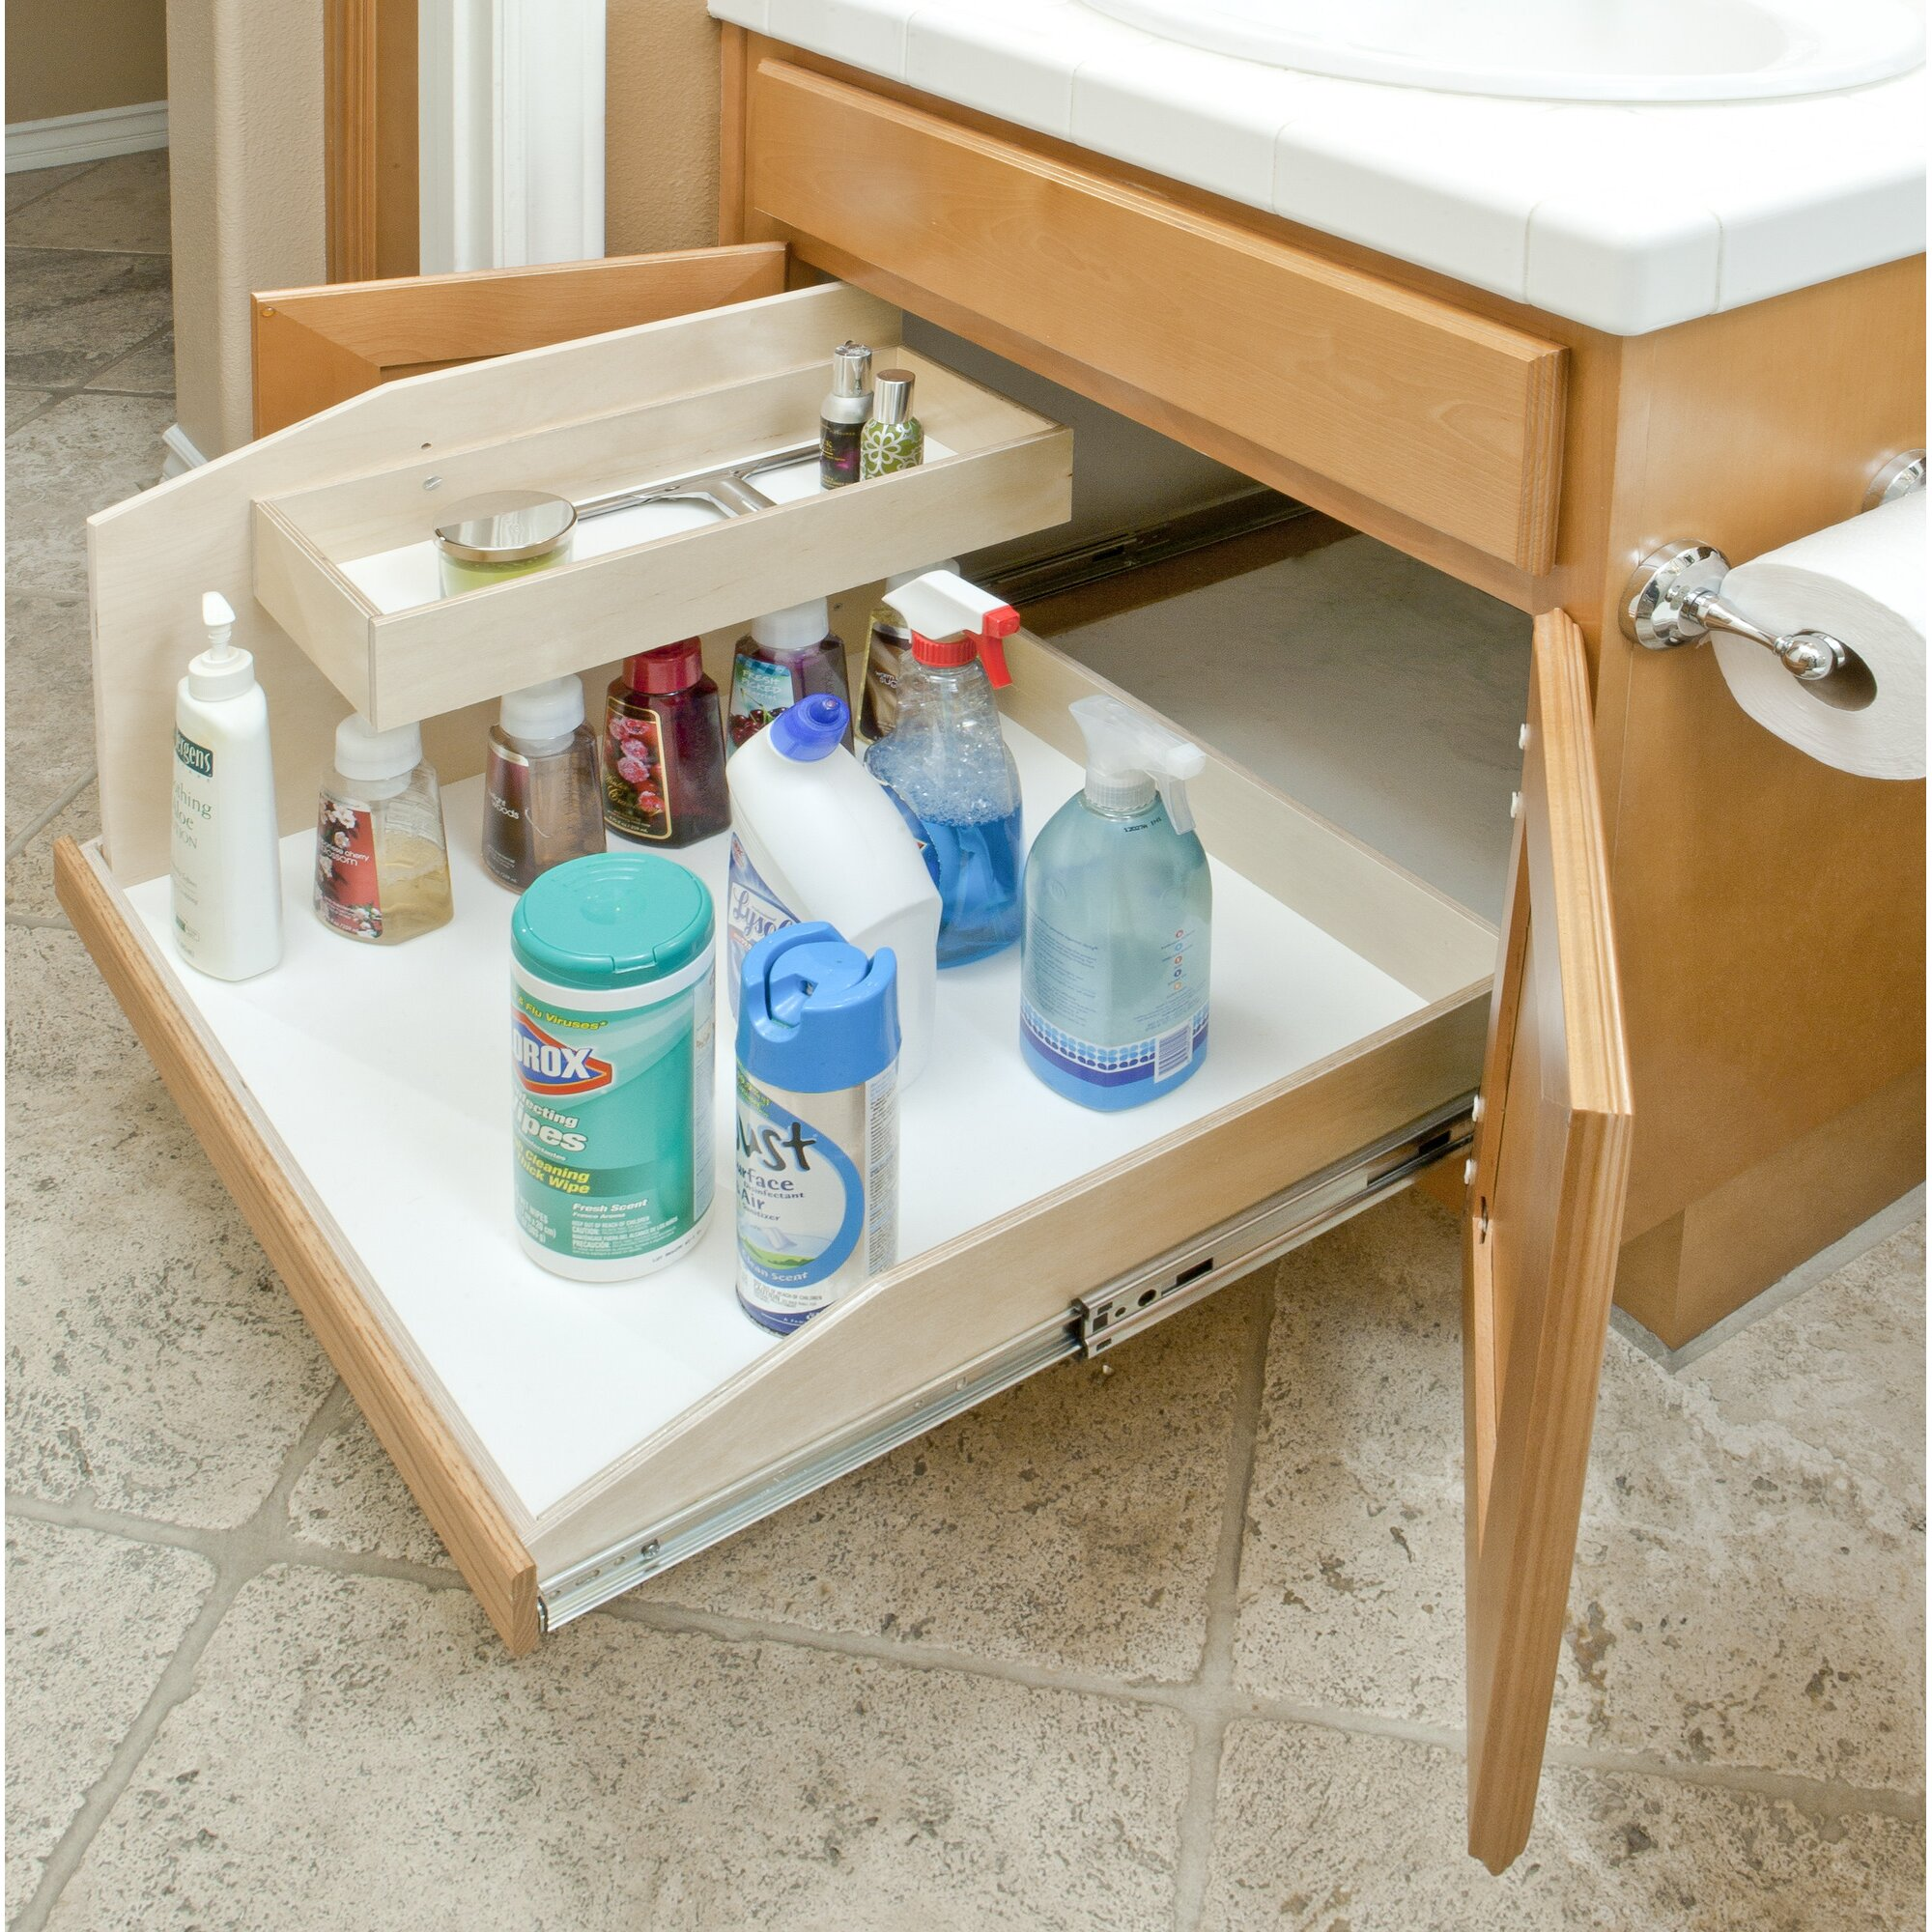 Under Sink Shelf Shelves That Slide Cabinet Pull Out: Slide-A-Shelf Full Extension Baltic Birch Sink Caddy Slide